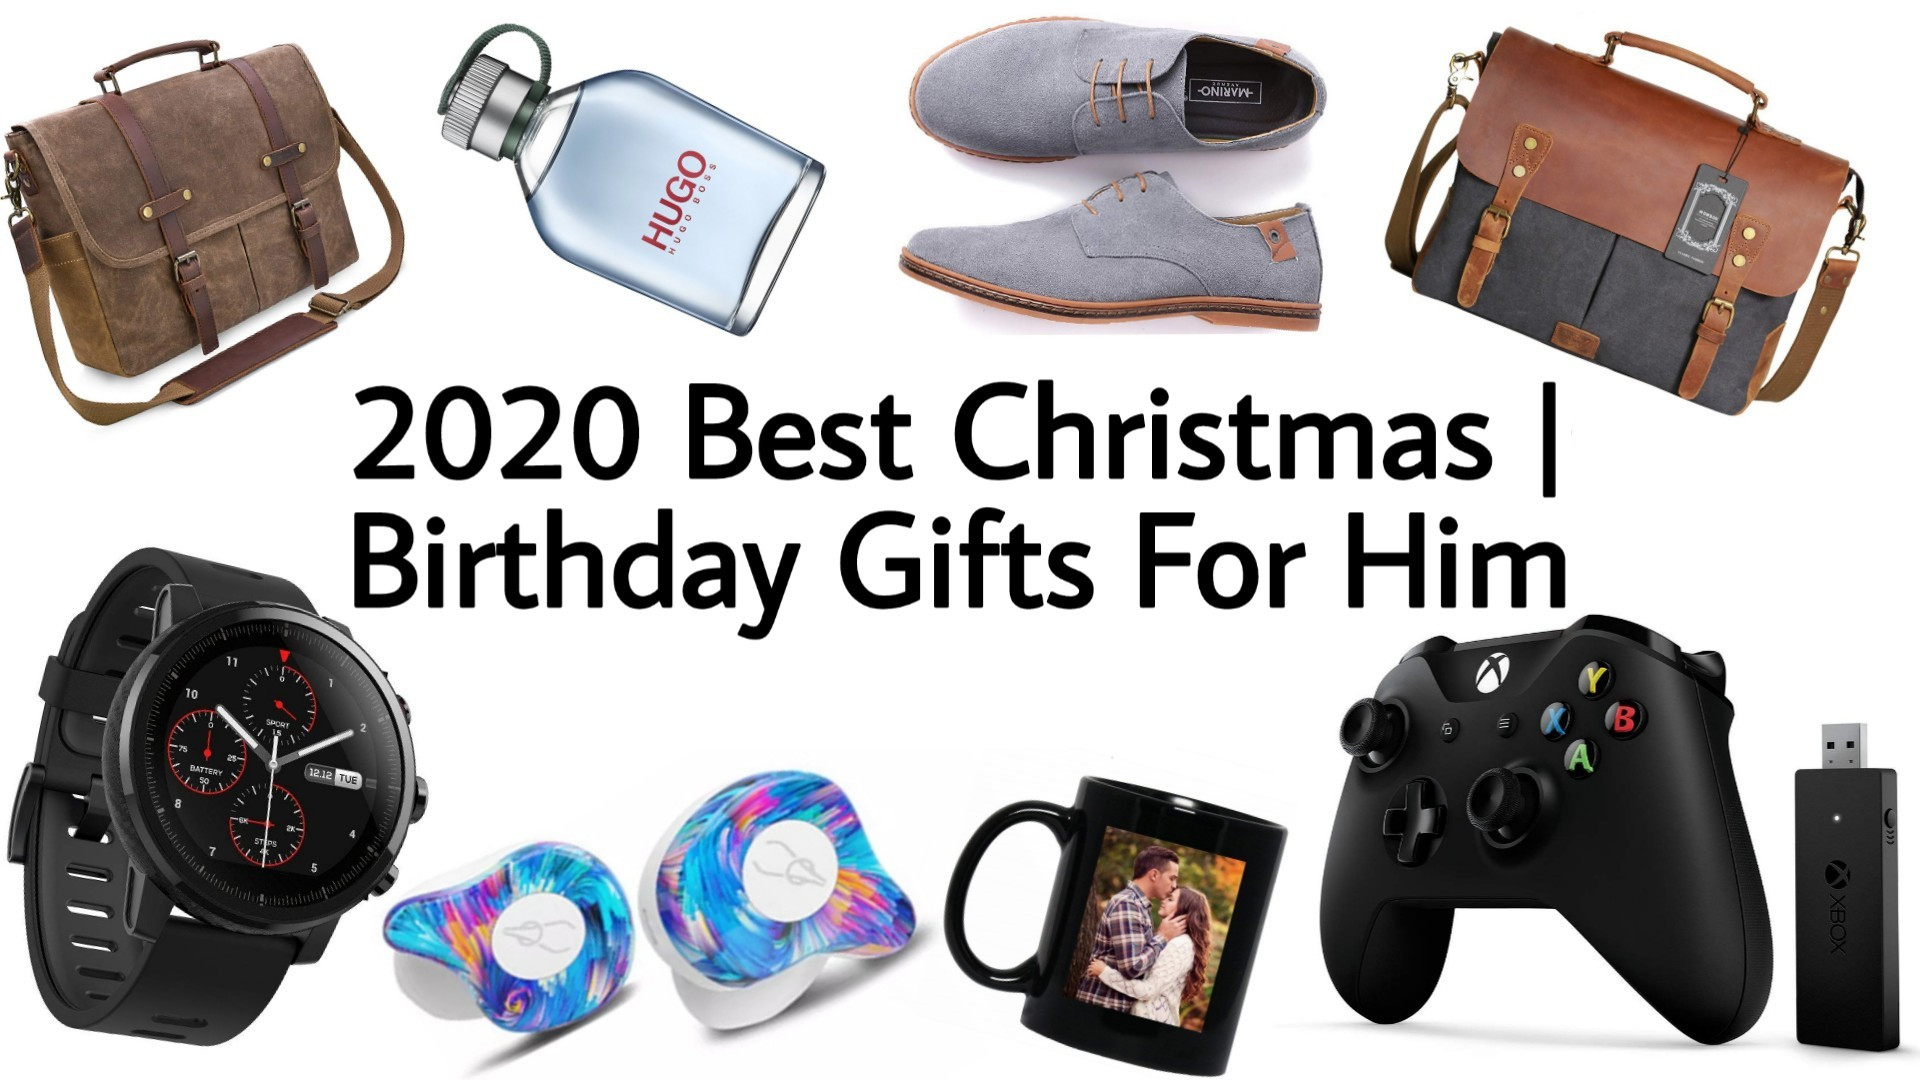 Boyfriend Christmas Gift Ideas 2020  Top Christmas Gifts for Him Boys Boyfriend Husband 2020